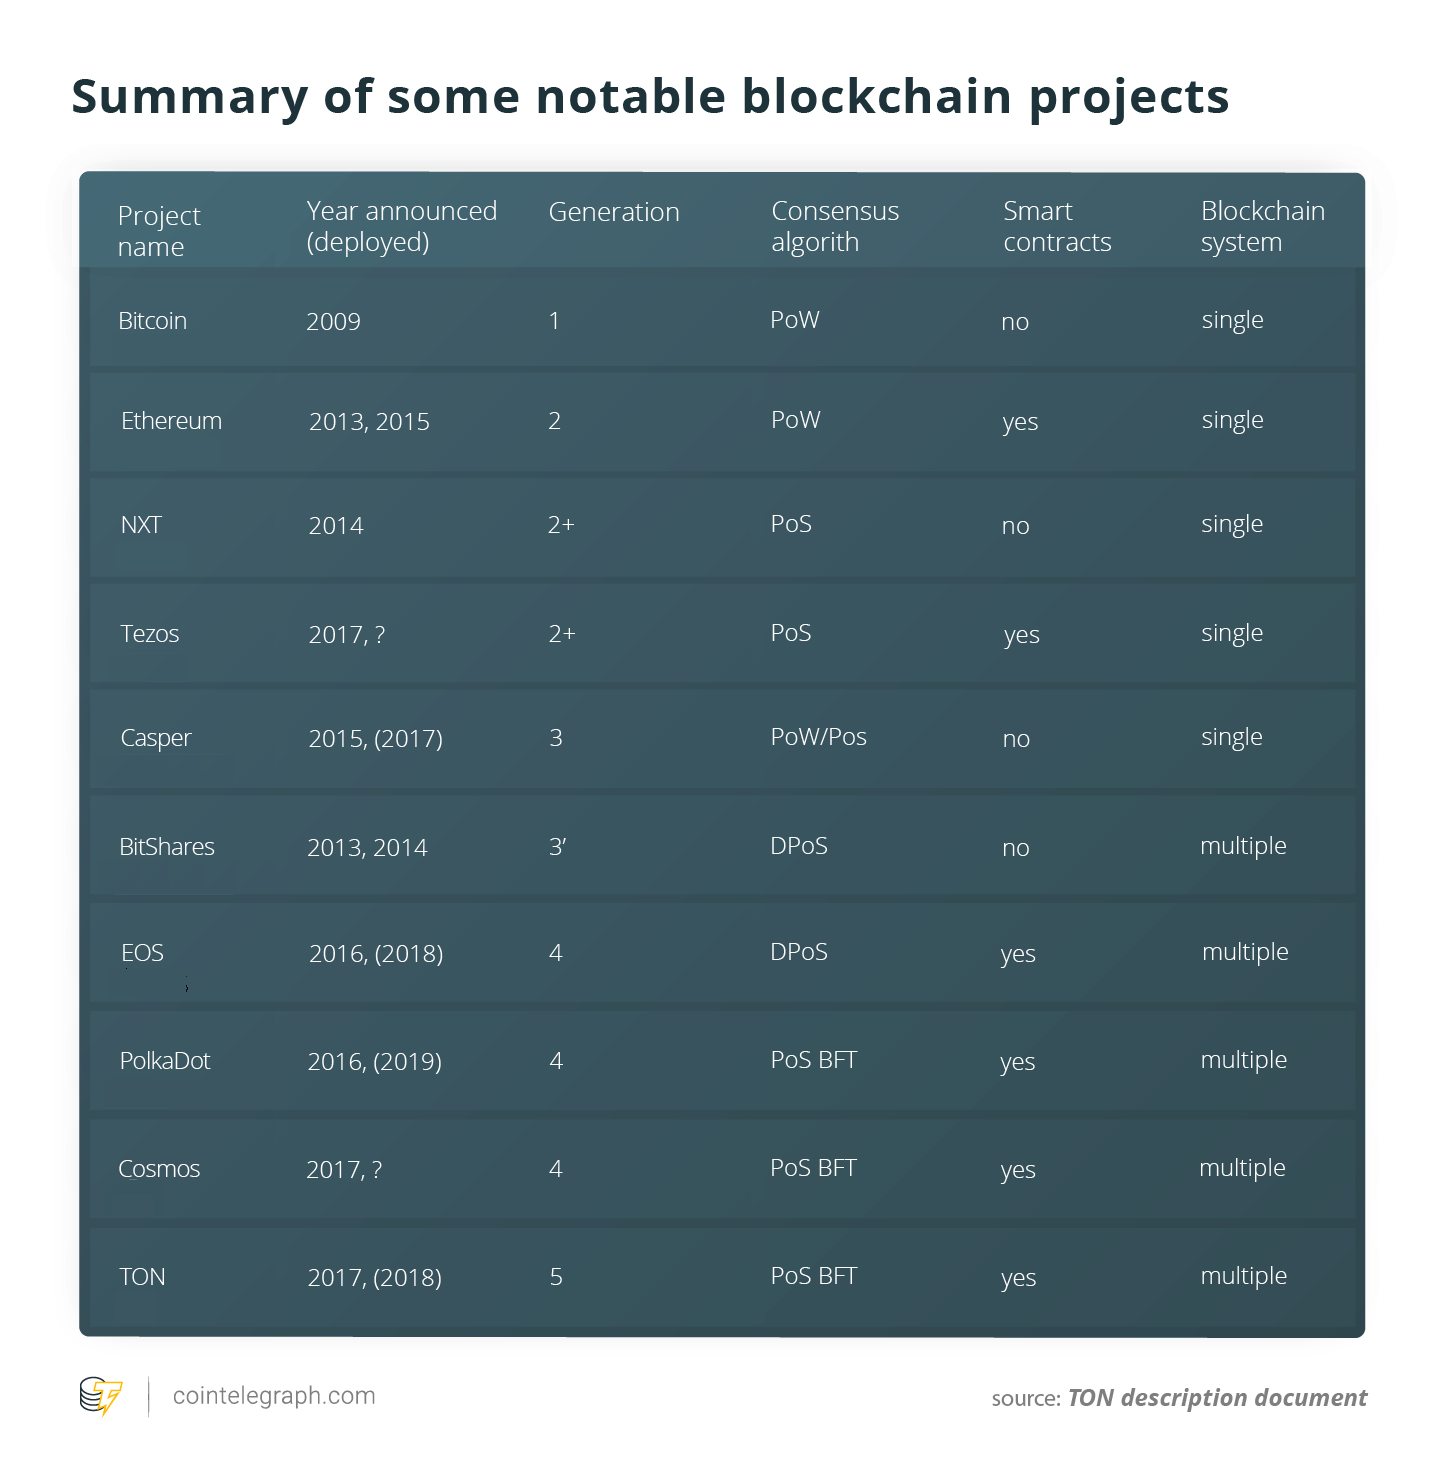 Summary of some notable blockchain projects